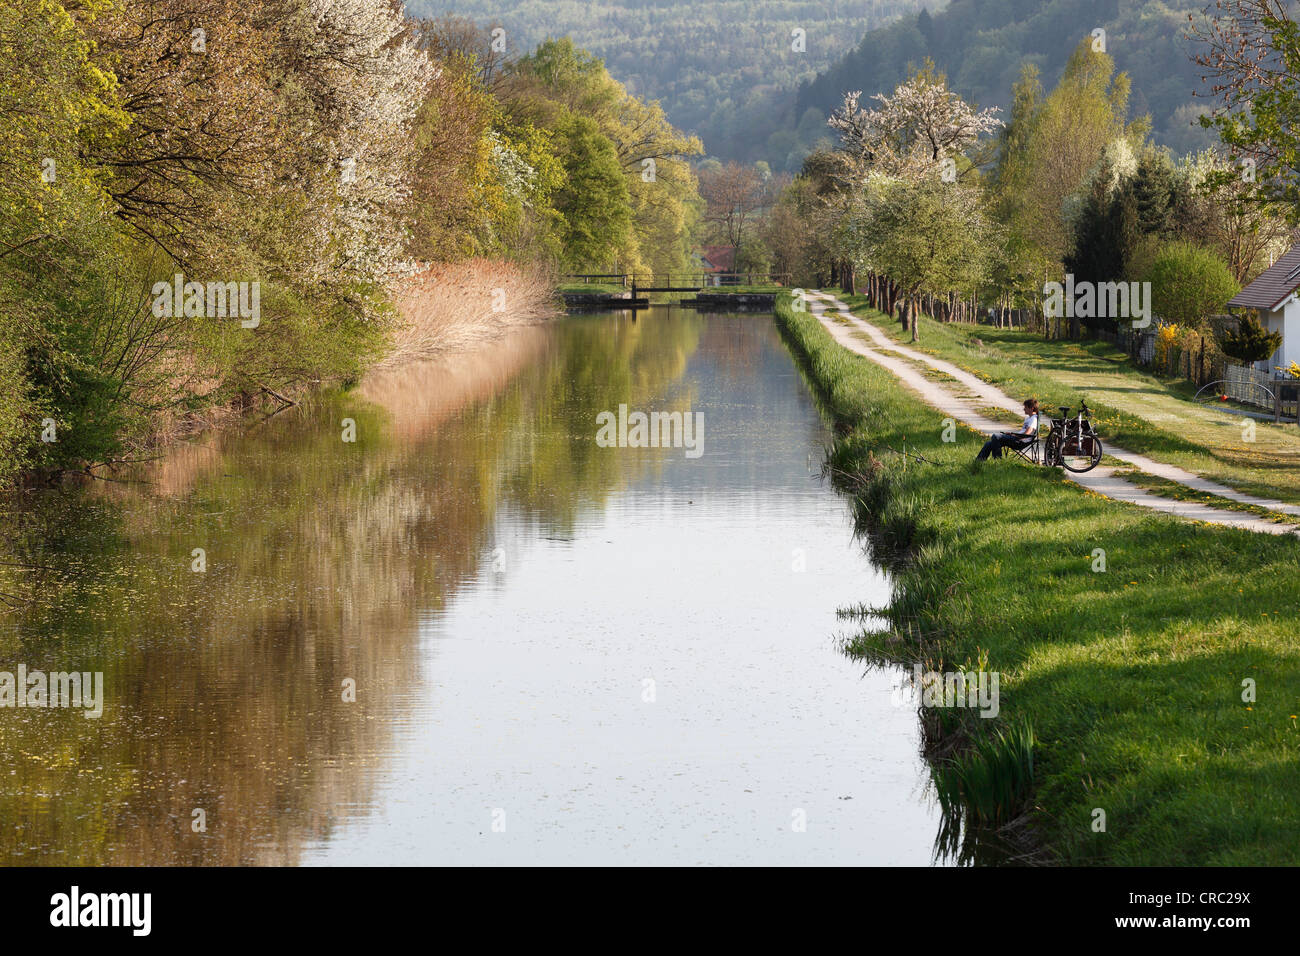 Ludwig-Donau-Main-Kanal or Ludwig Canal, Berching, Upper Palatinate, Bavaria, Germany, Europe - Stock Image